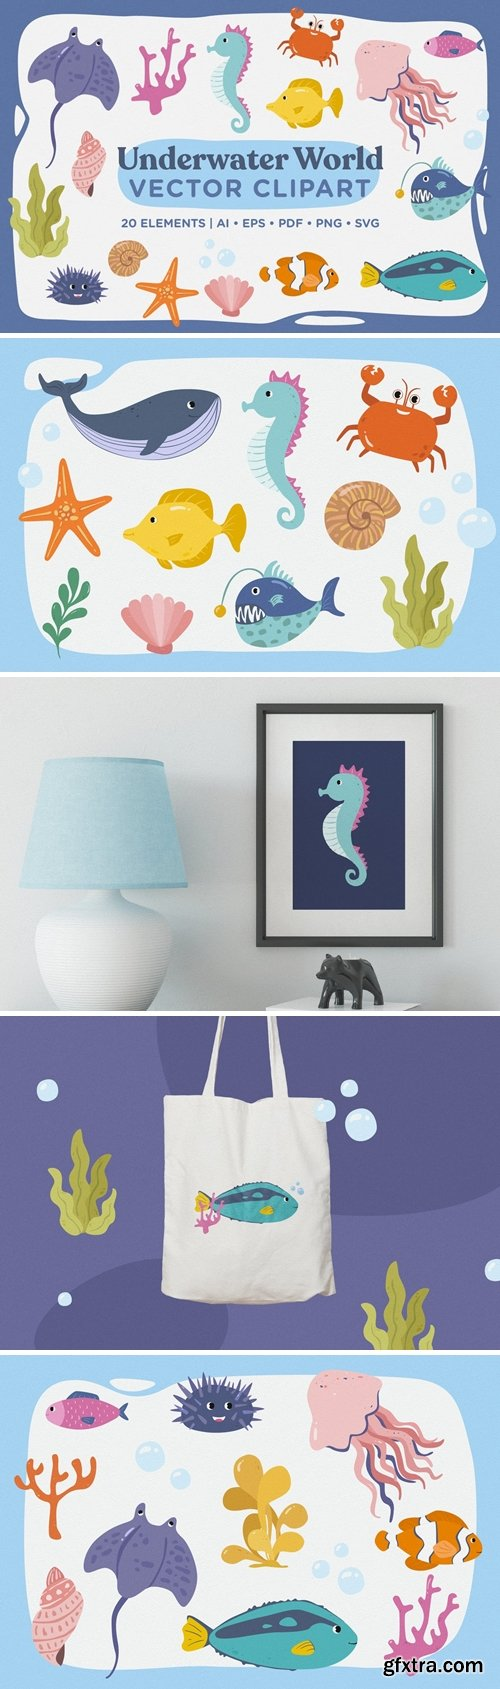 Underwater World Vector Clipart Pack